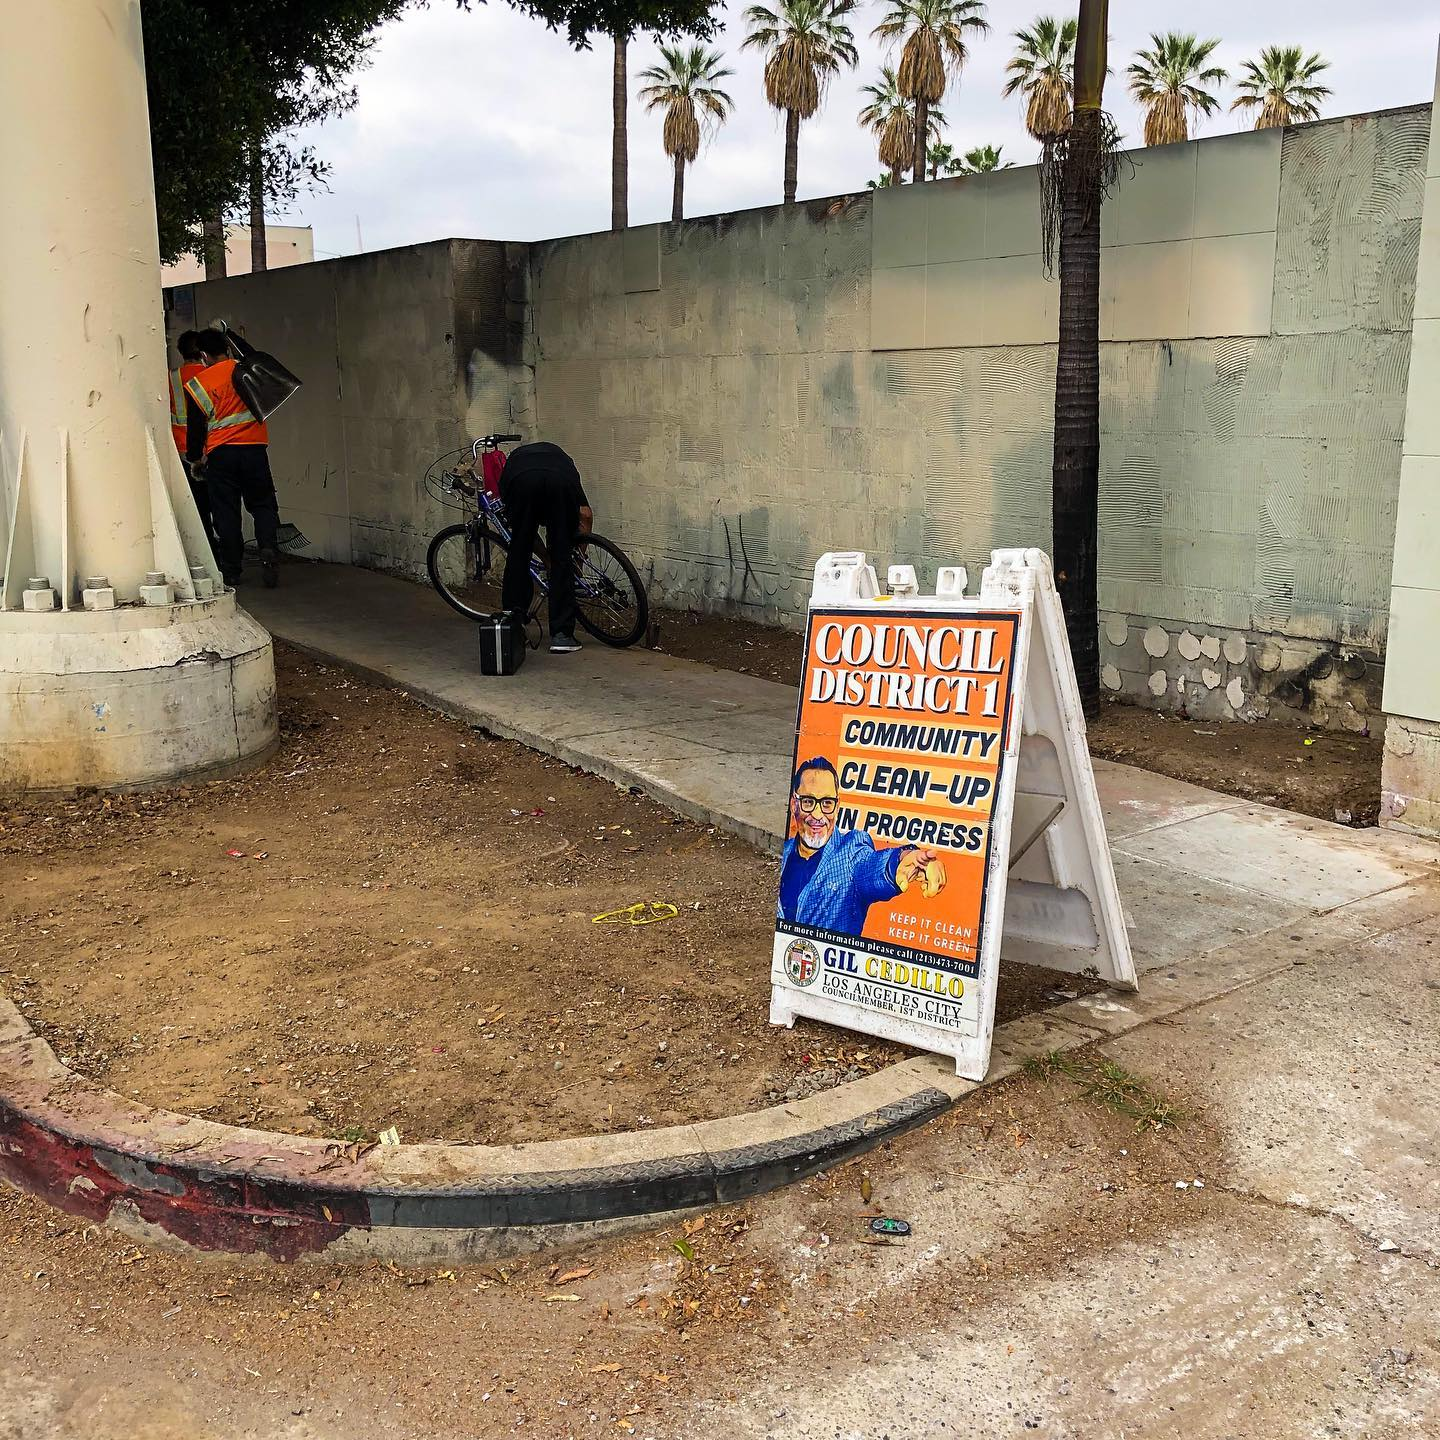 CD1 Community Clean up in Progress at Olympic Blvd in Pico Union 5-19-2021